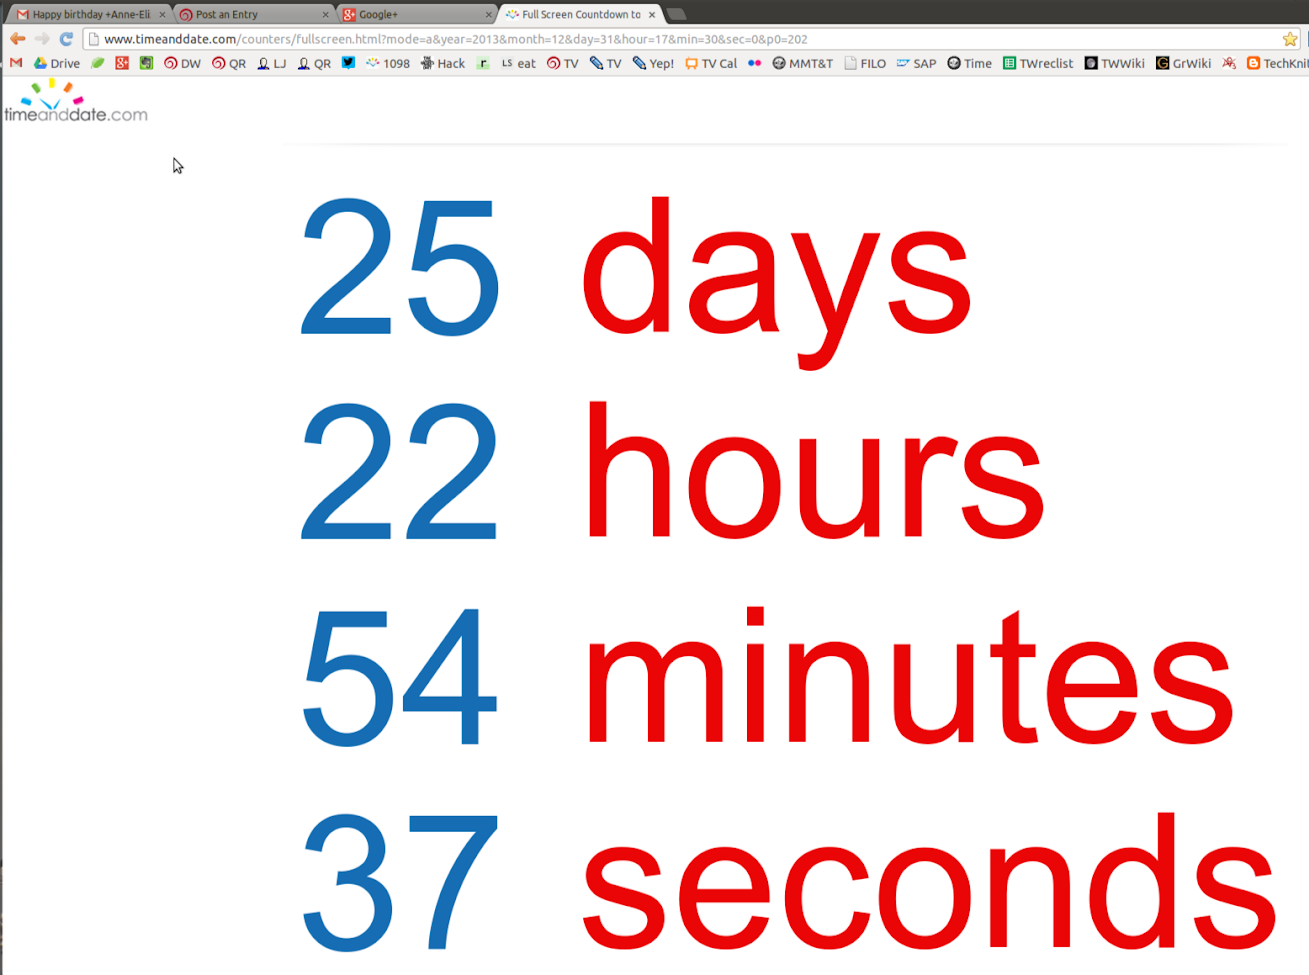 Retirement Countdown showing 25 days, 23 hours